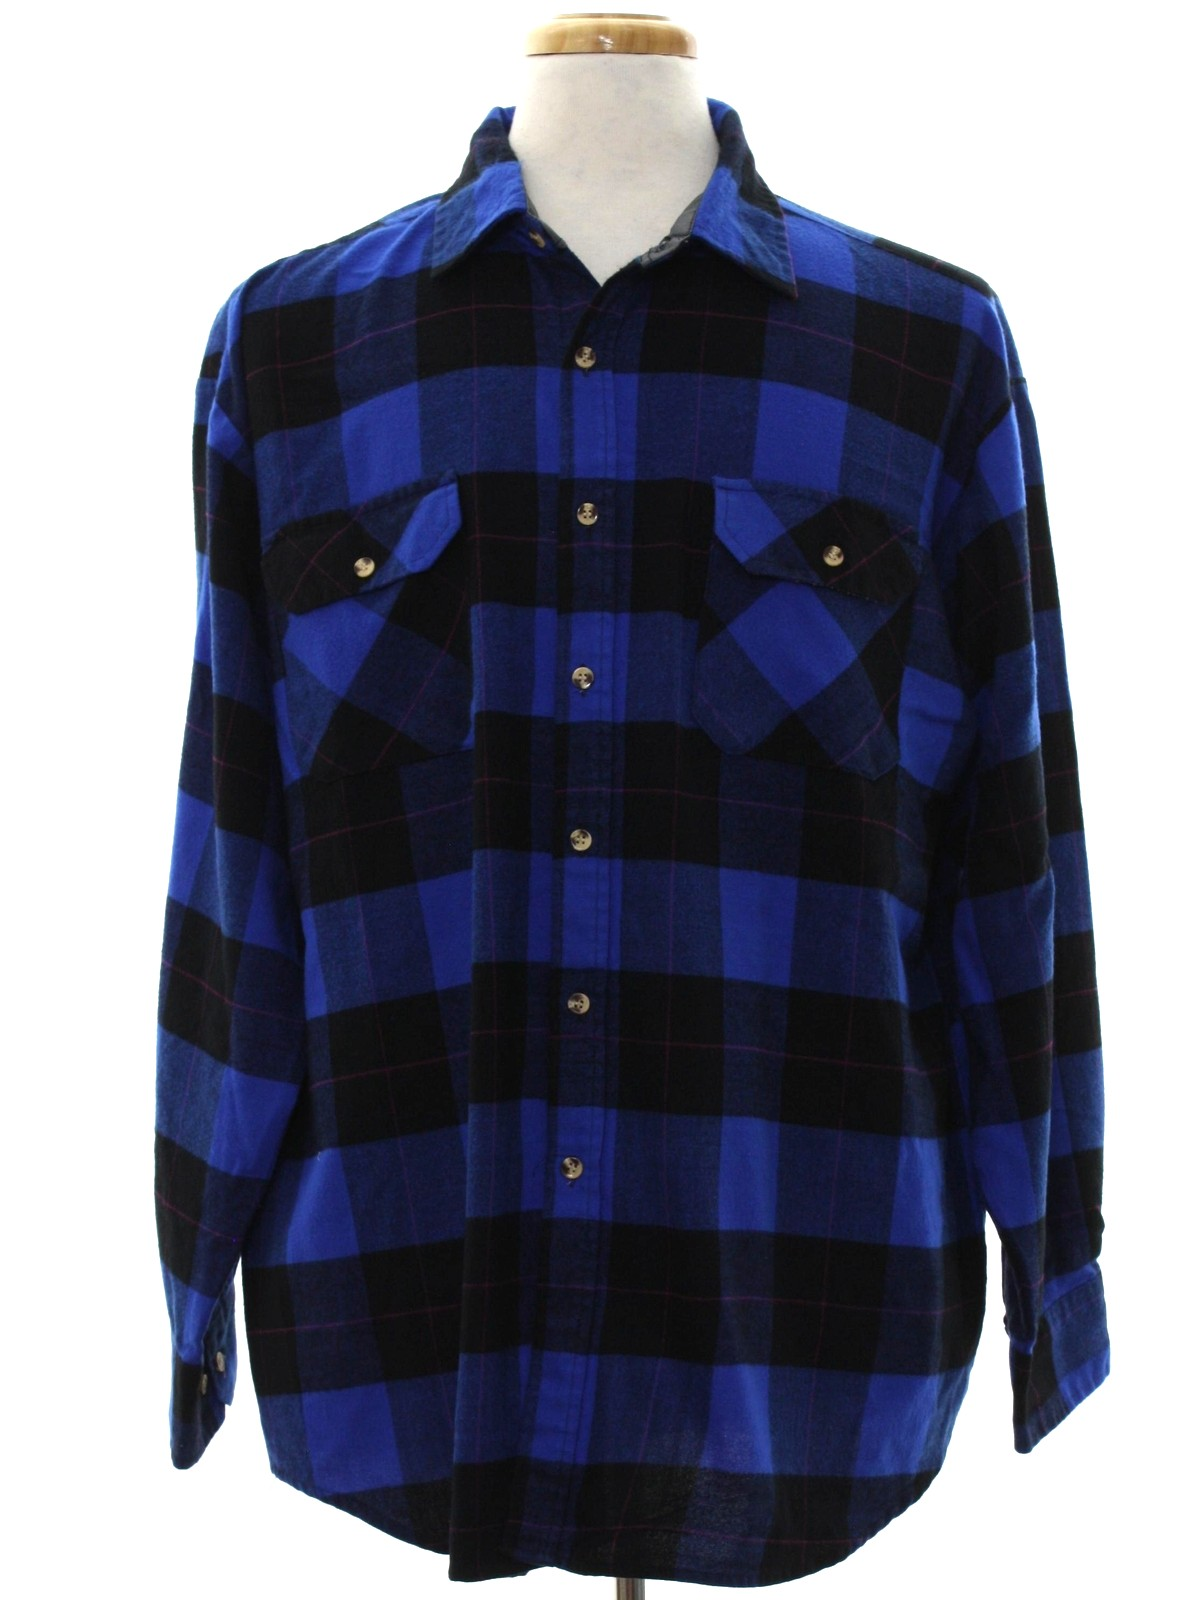 80 39 s saugatuck shirt late 80s or early 90s saugatuck for Royal blue plaid shirt mens